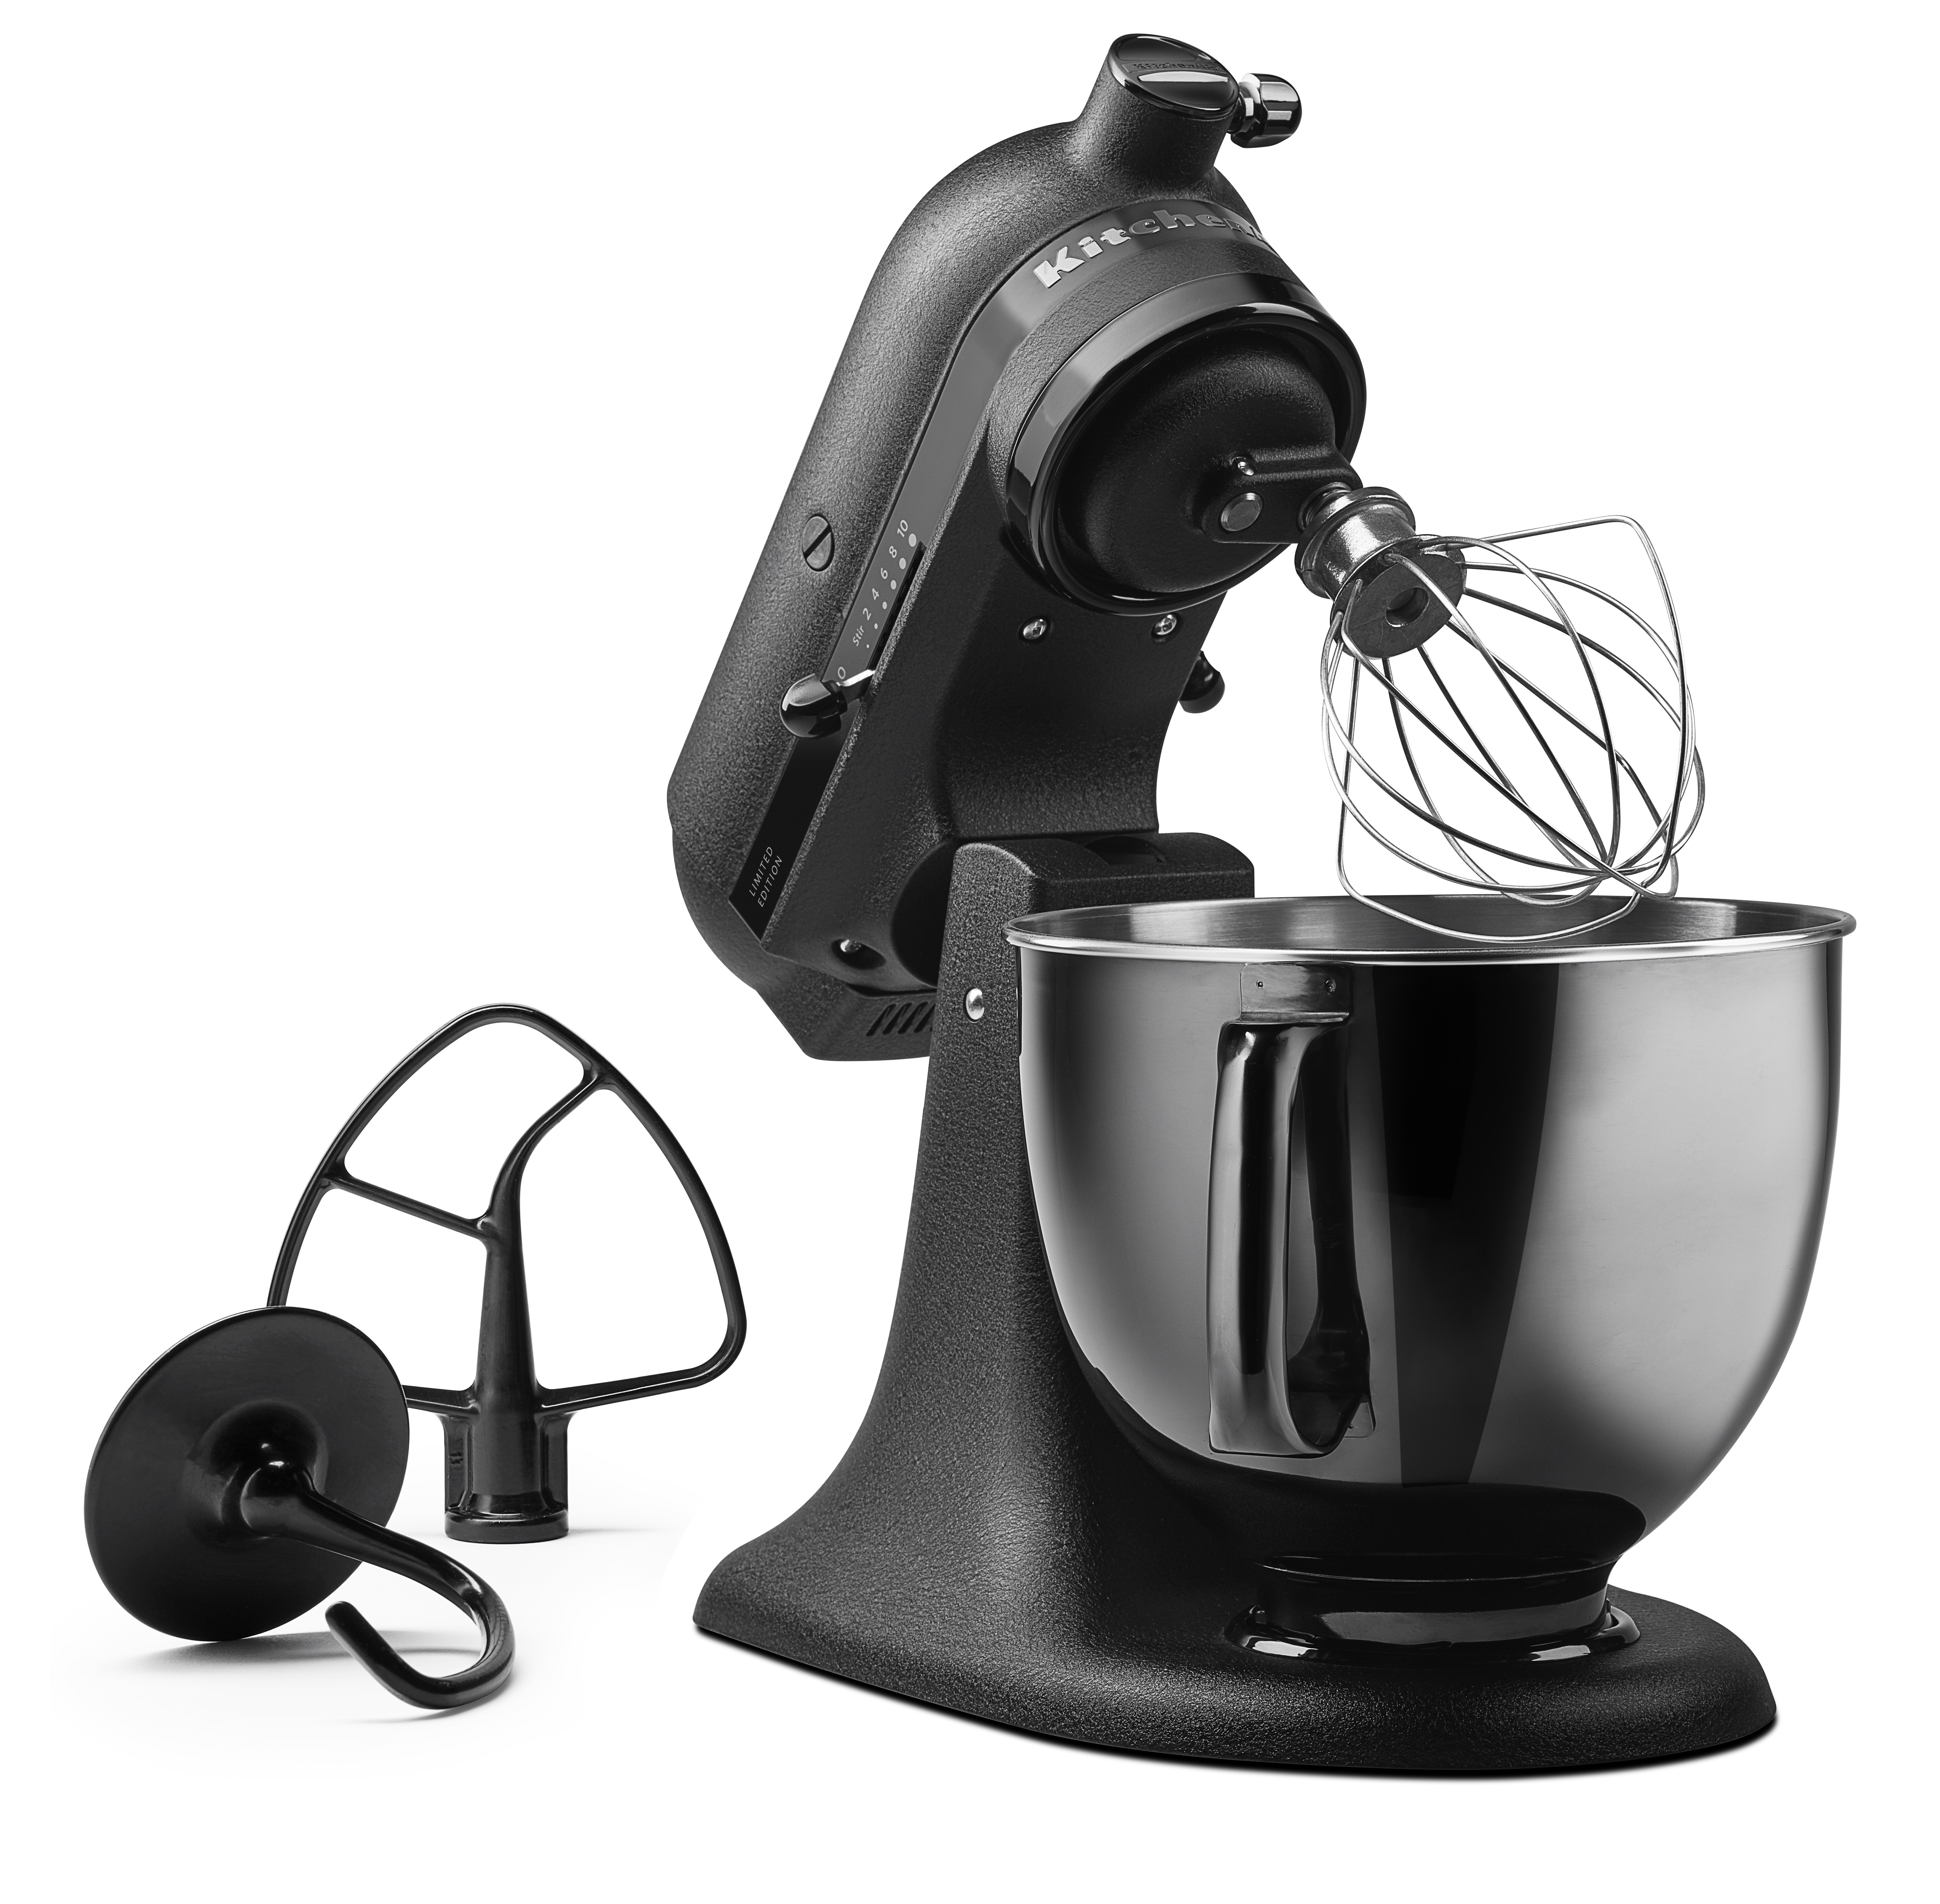 Kitchenaid Introduces Limited Edition Black Tie Stand Mixer